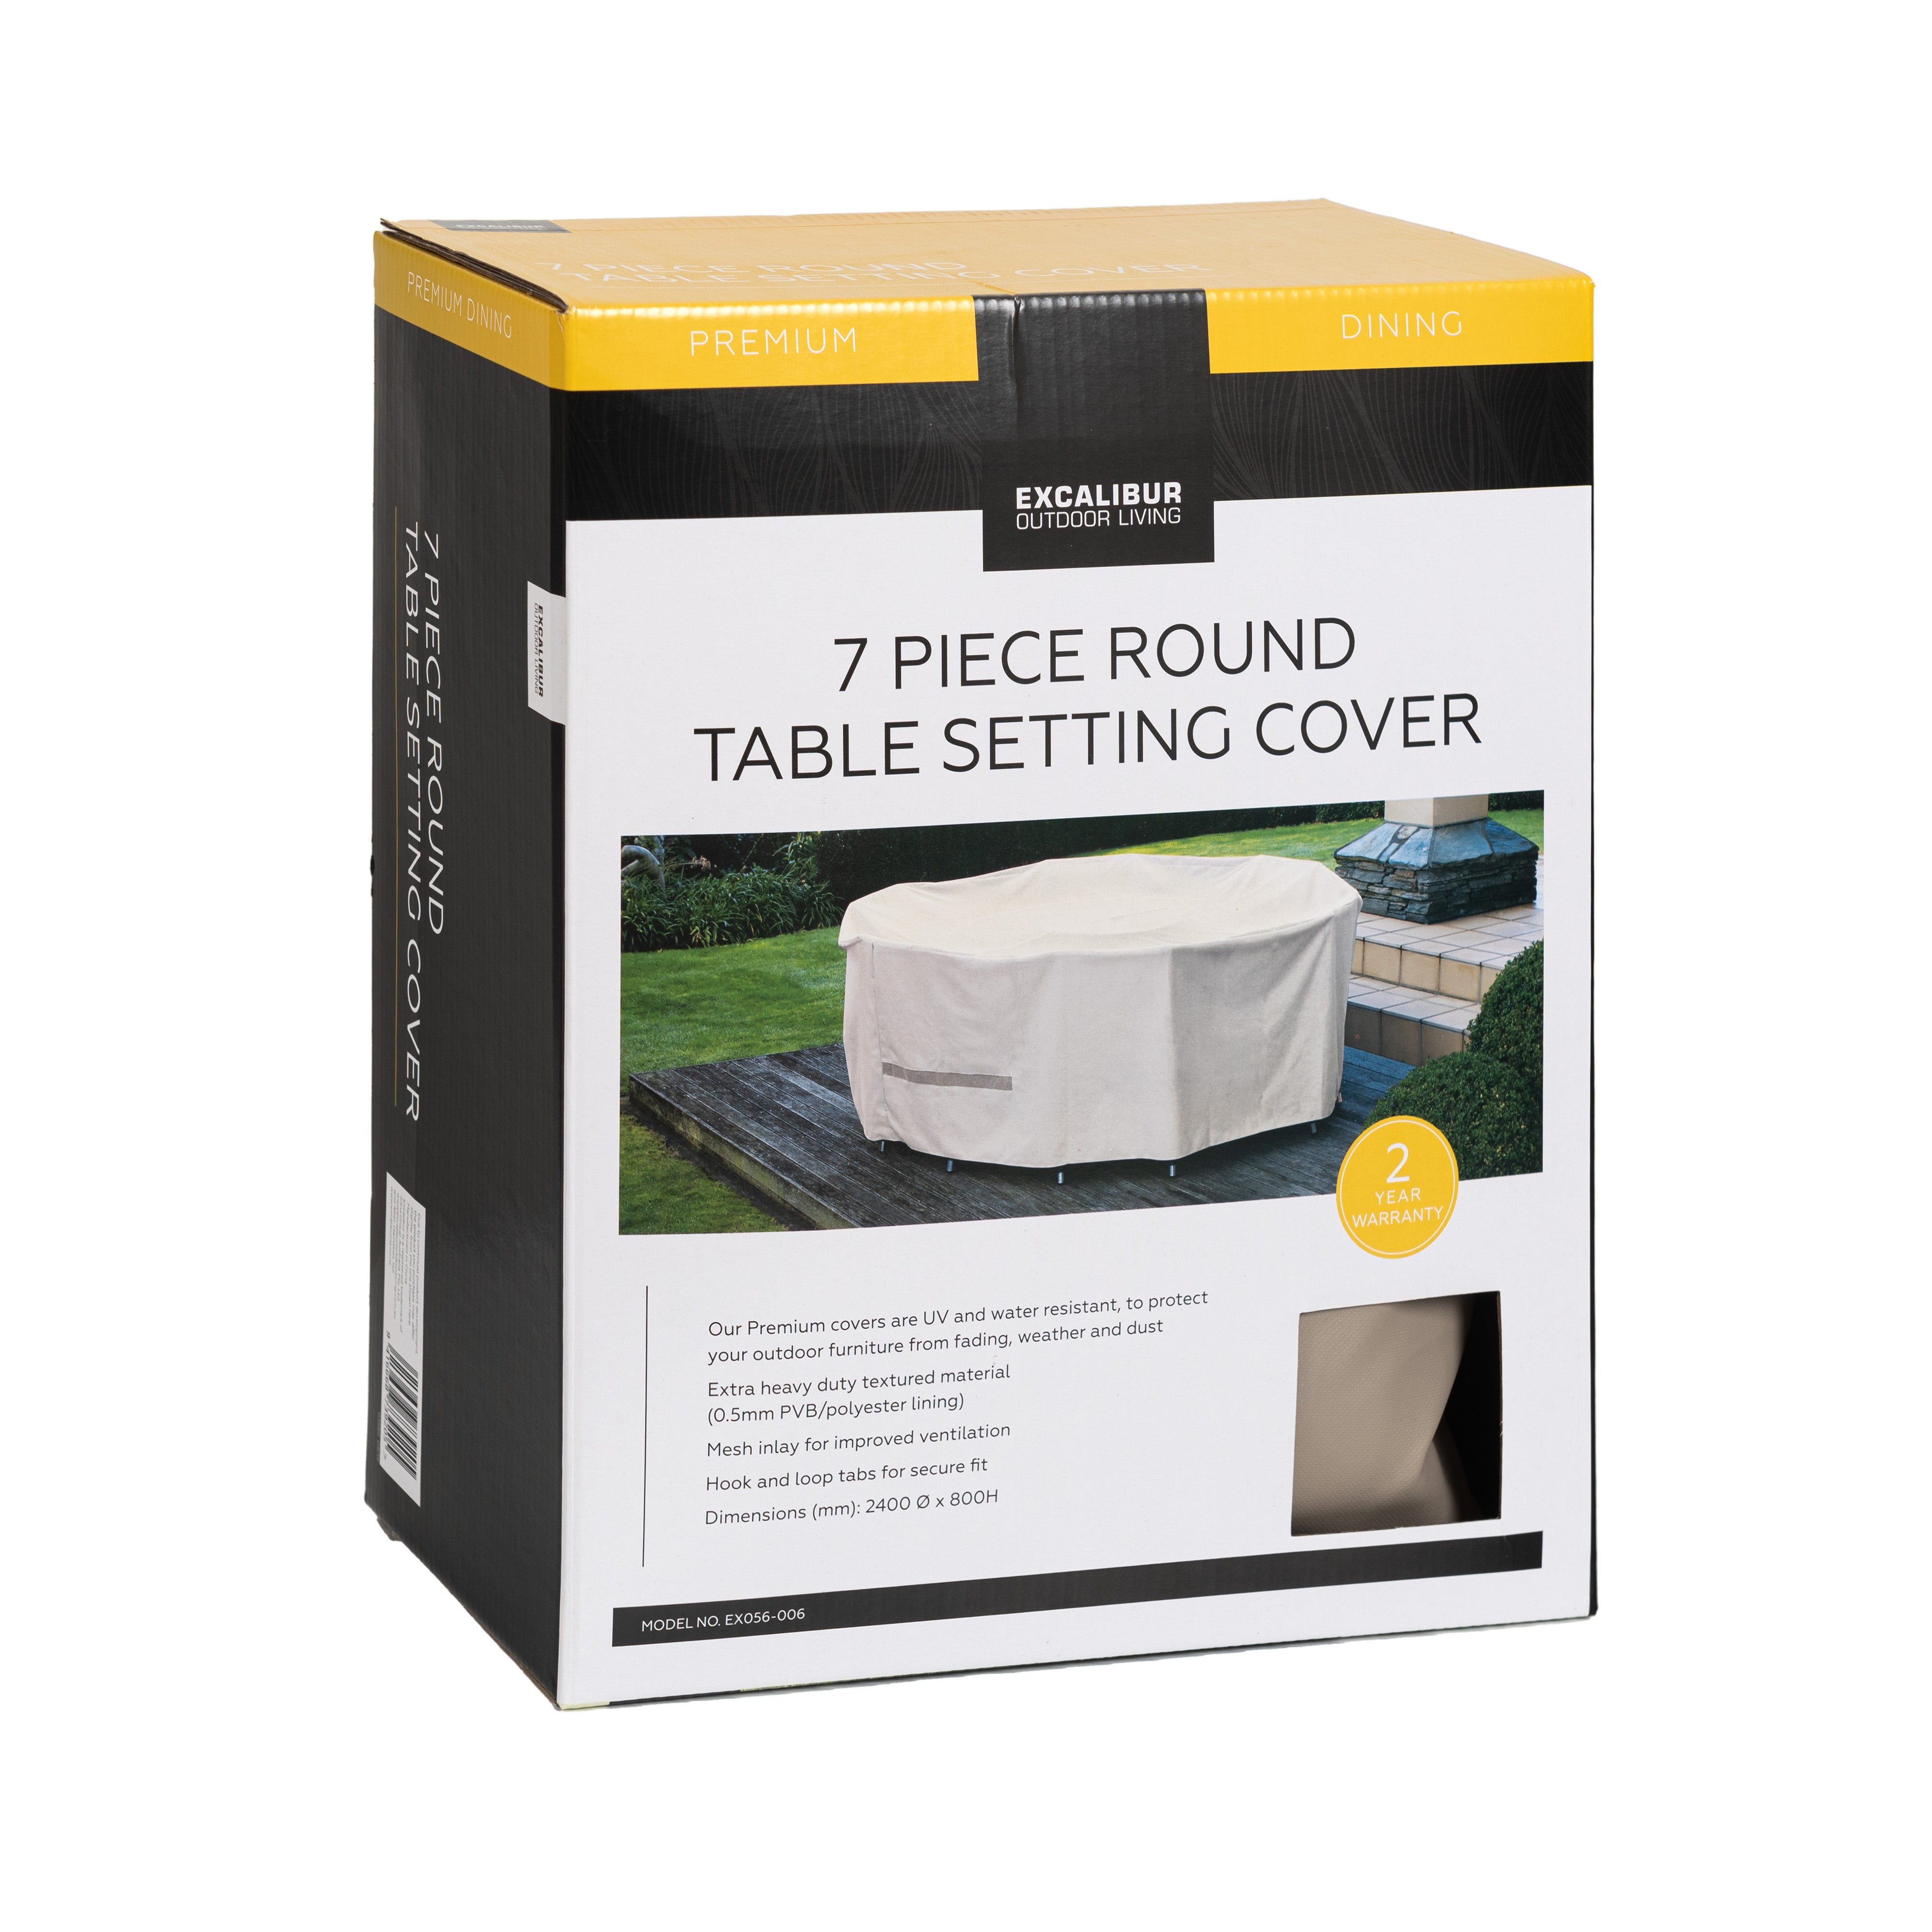 Excalibur Outdoor Living 7 Piece Round Table Furniture Cover